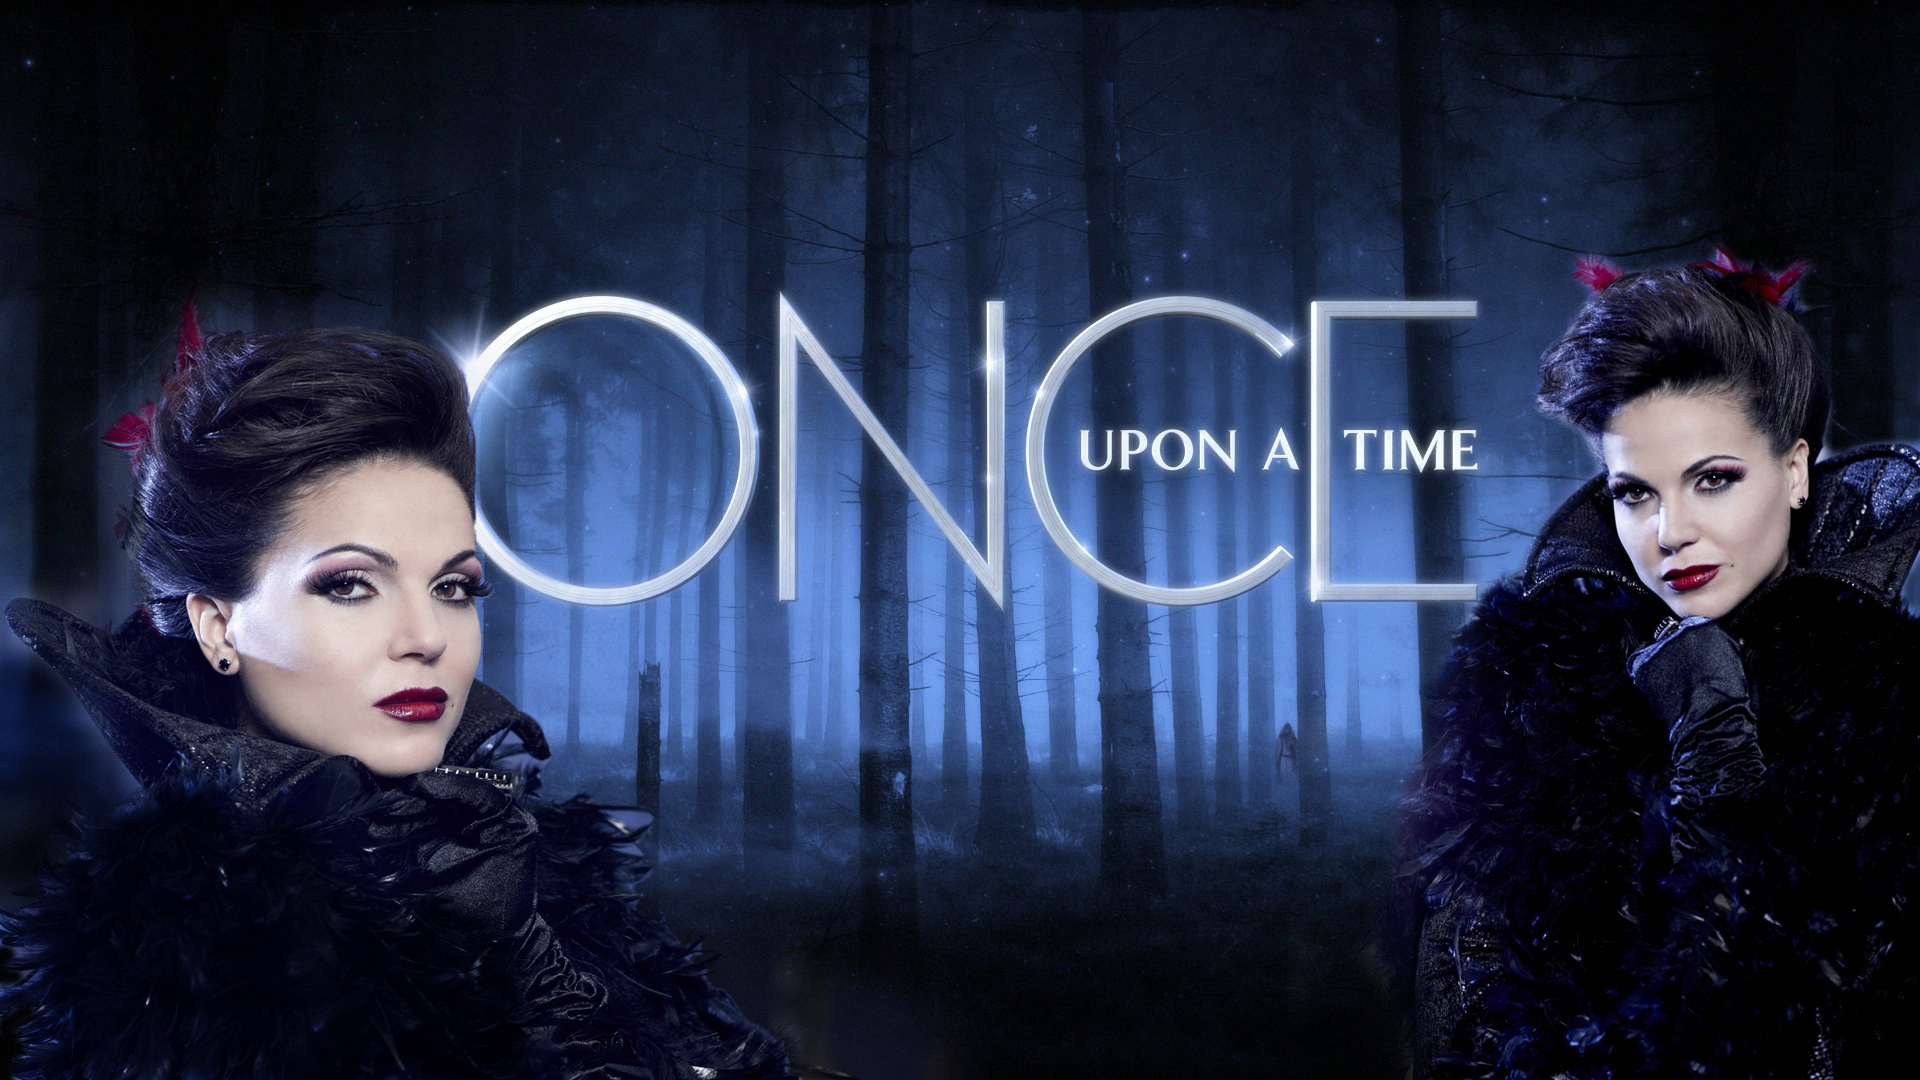 image Once upon a time vol 2 special